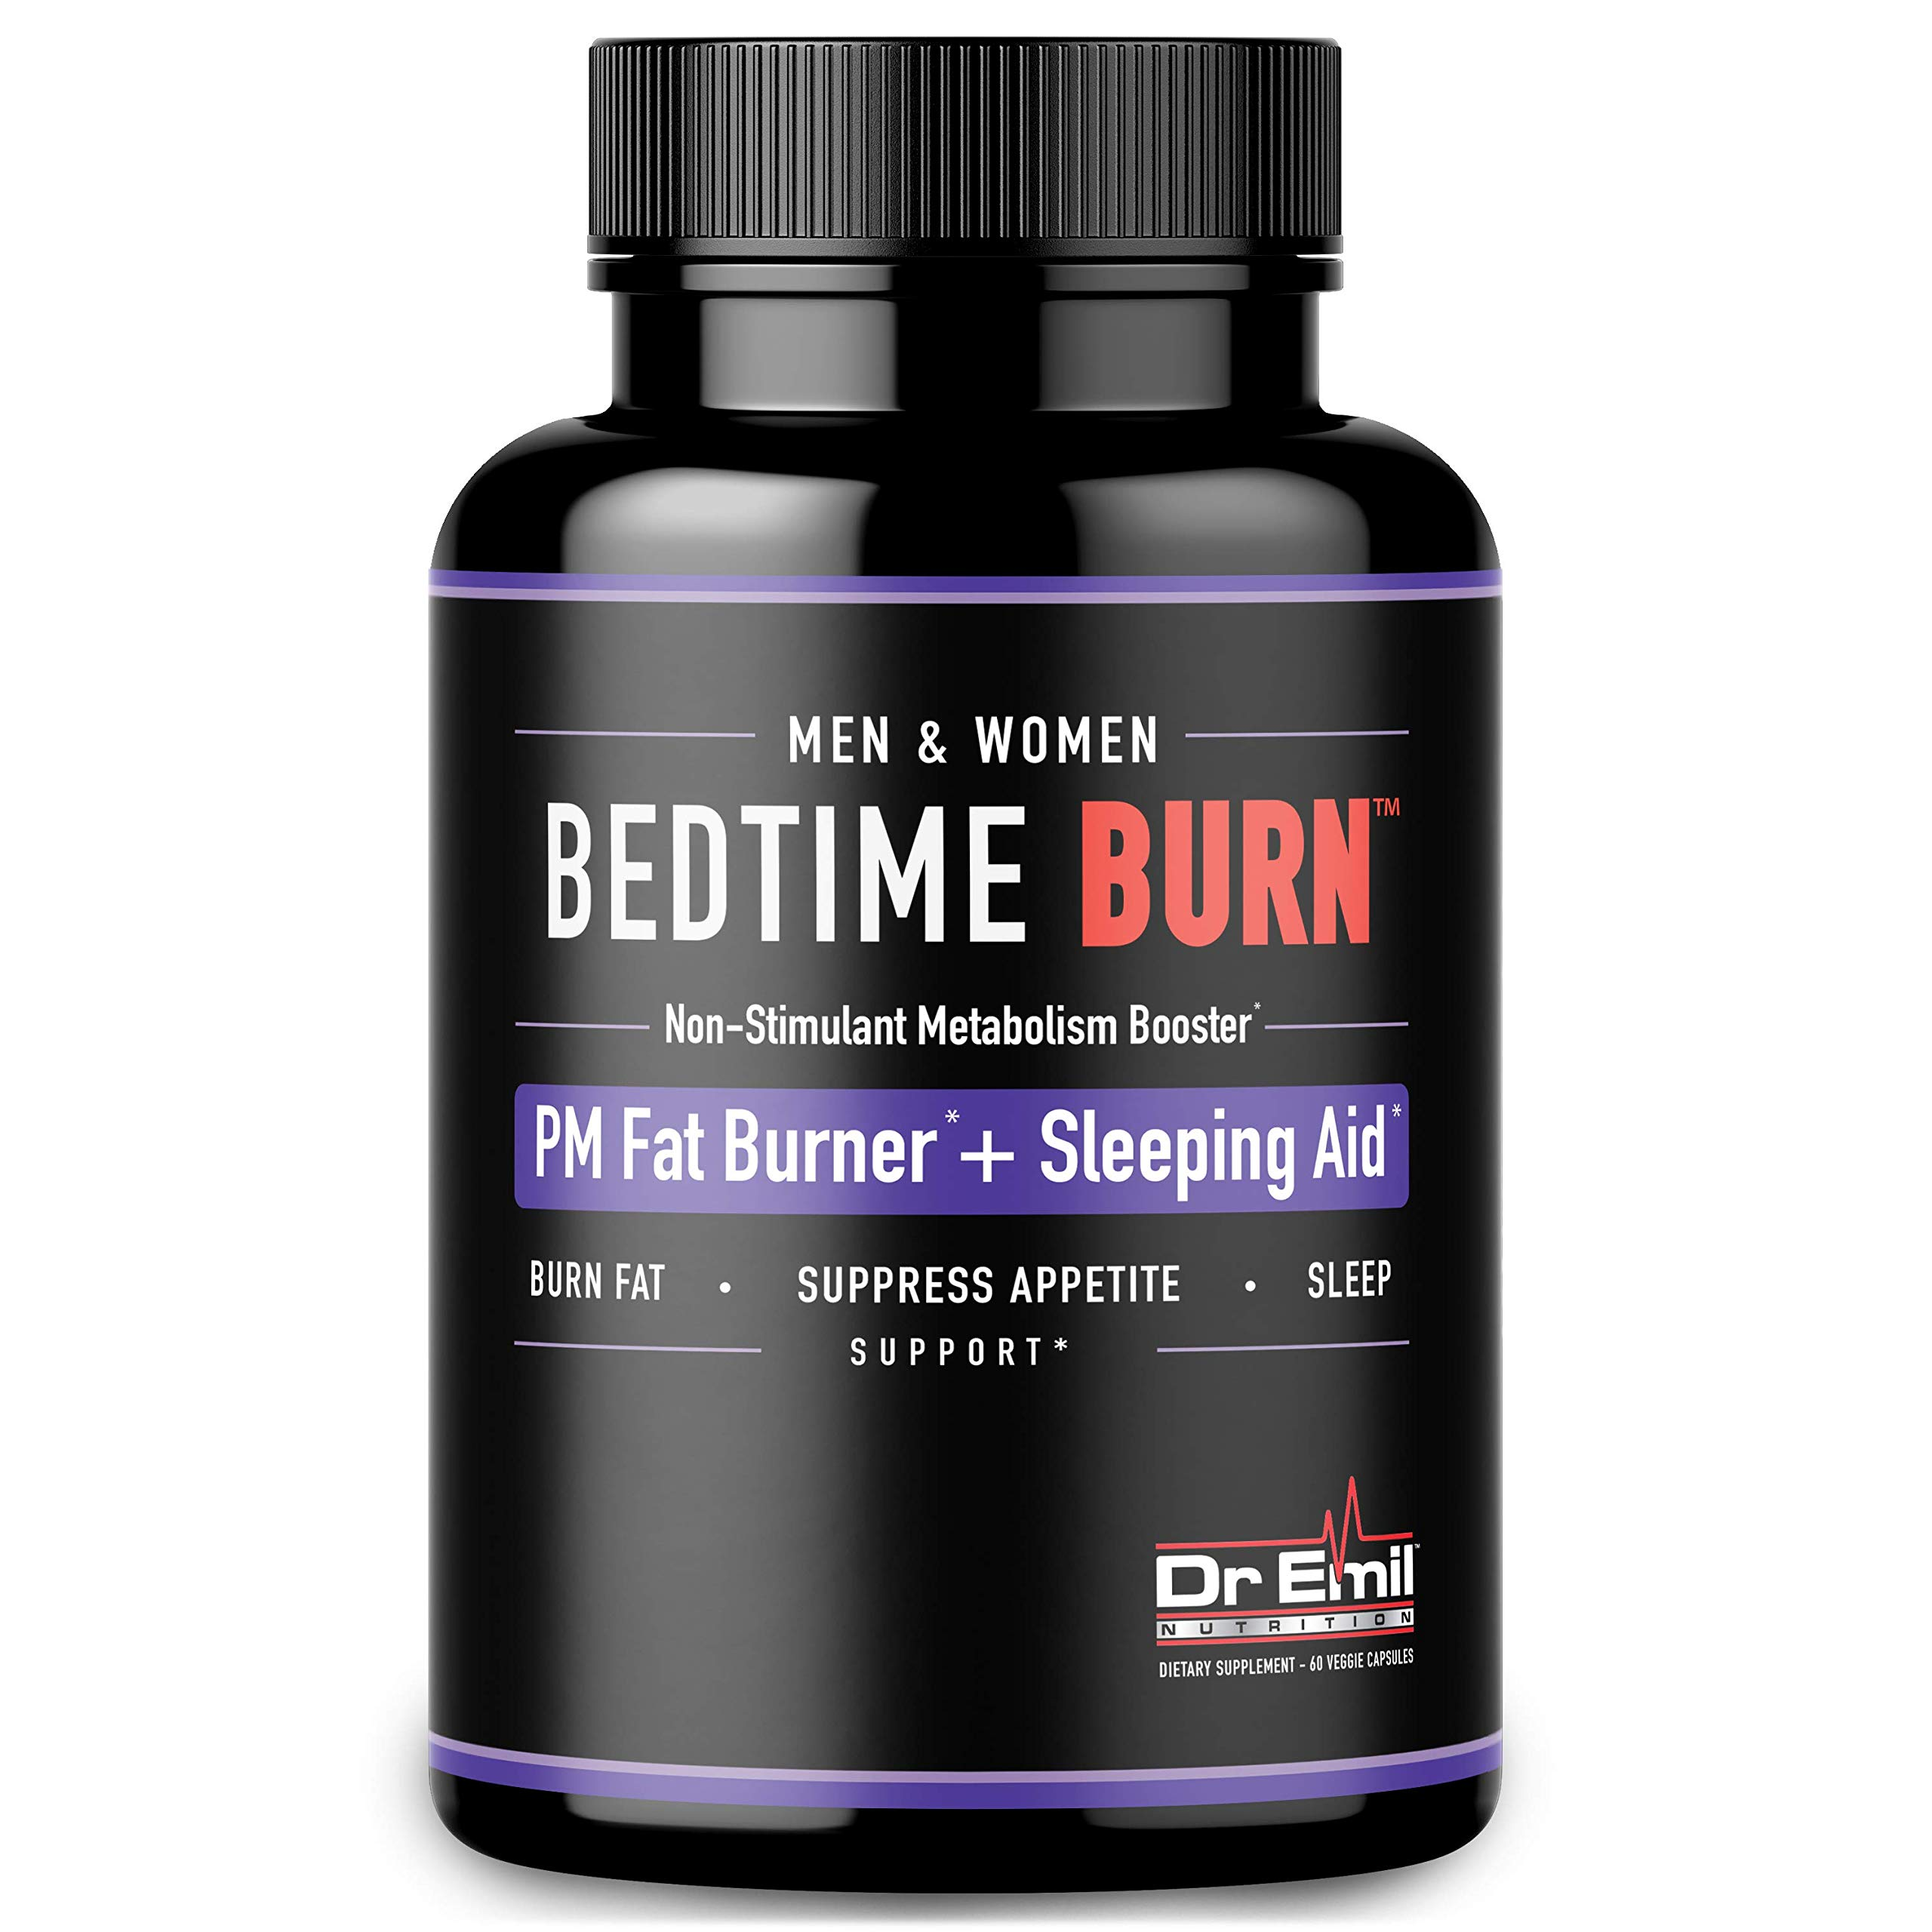 Dr. Emil - PM Fat Burner, Sleep Aid and Night Time Appetite Suppressant - Stimulant-Free Weight Loss Pills and Metabolism Booster for Men and Women (60 Vegan Diet Pills) by DR EMIL NUTRITION